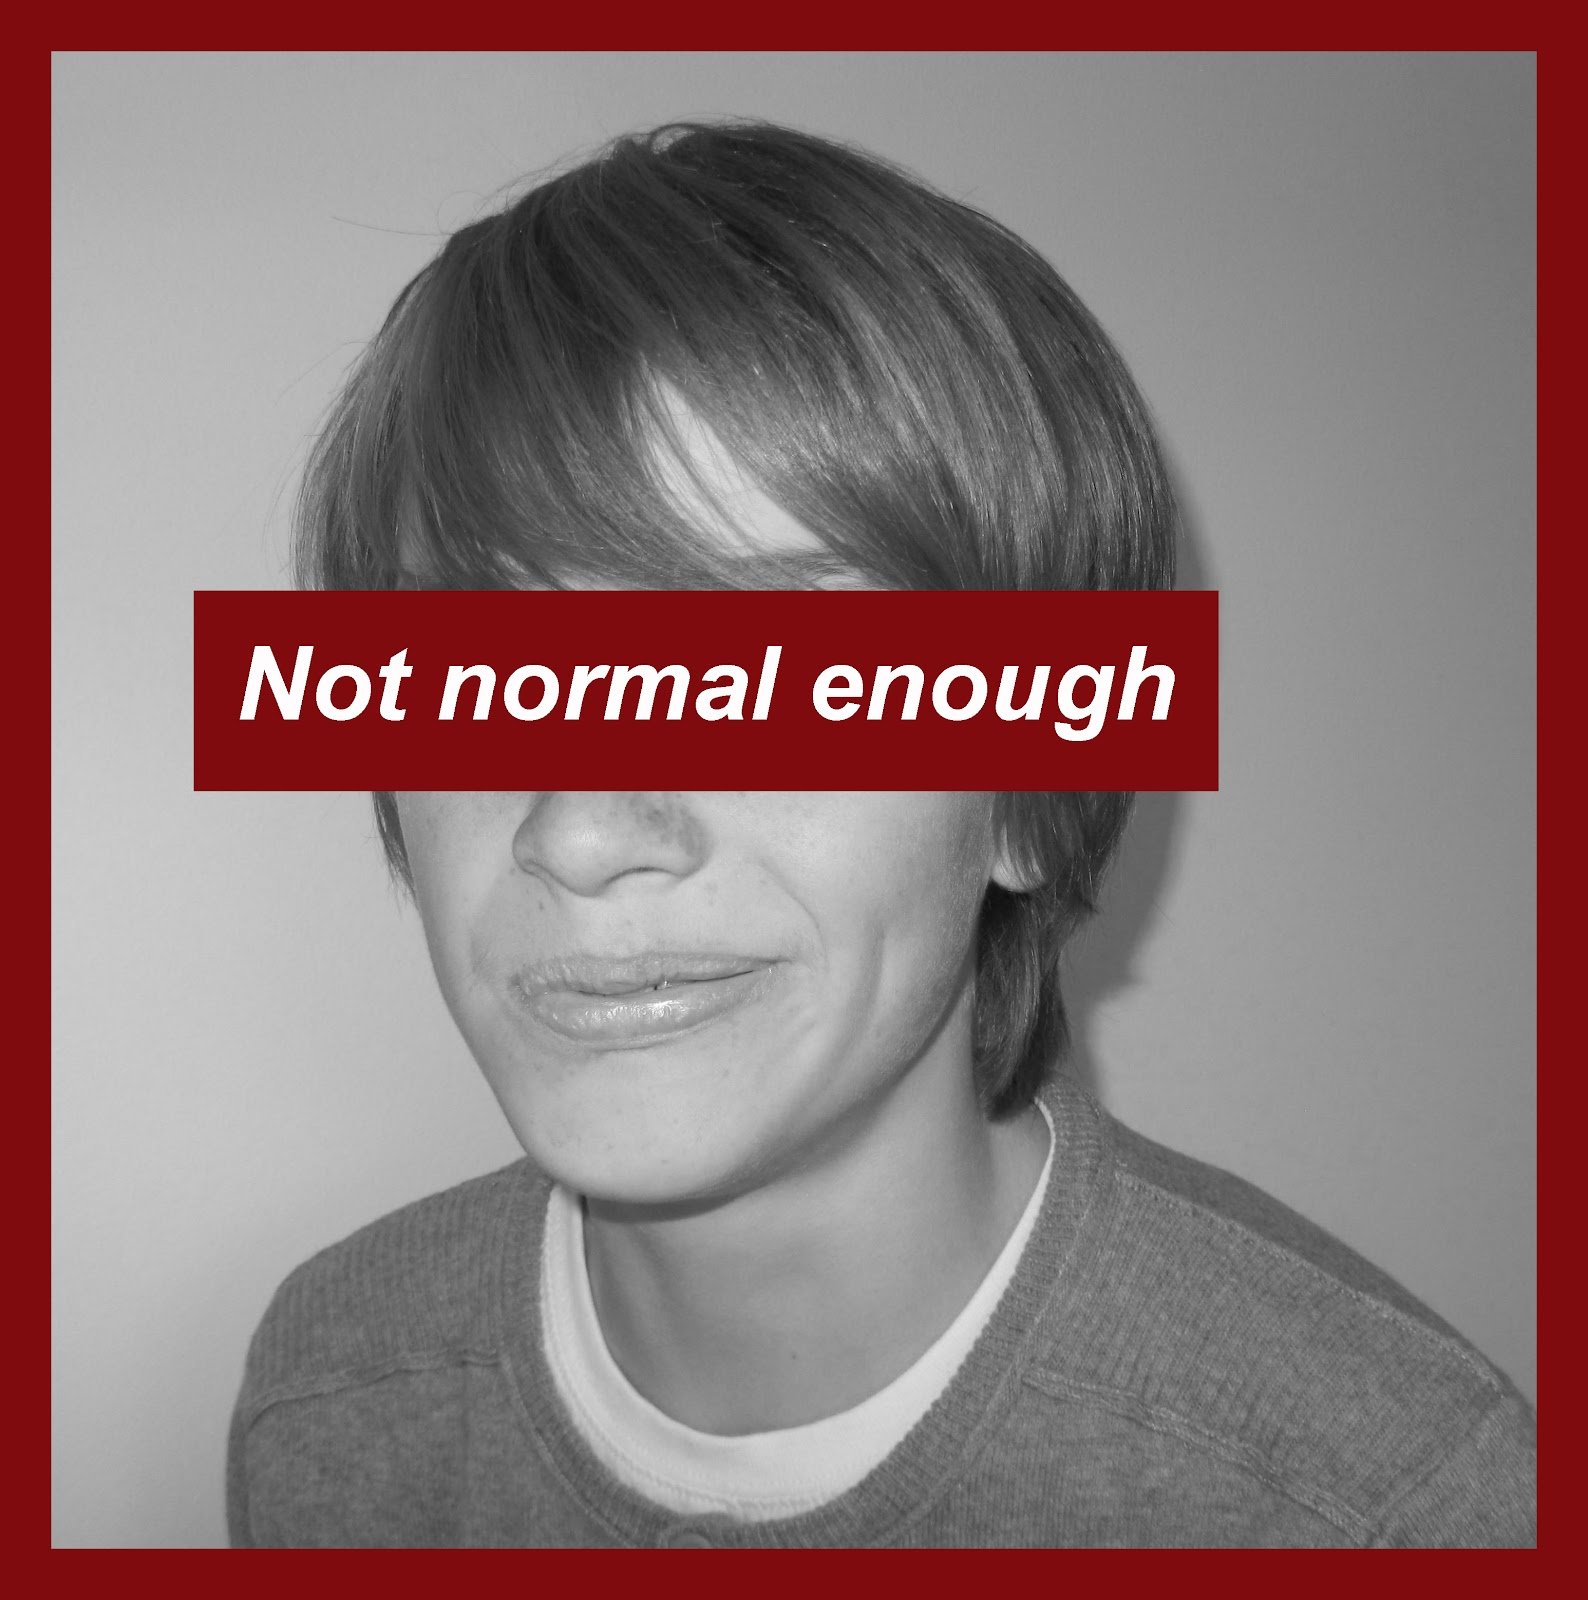 barbara kruger research Barbara kruger was born in 1945 in new jersey she is an american conceptual artist and collagist she studied art and design in her early years alongside diane arbus.